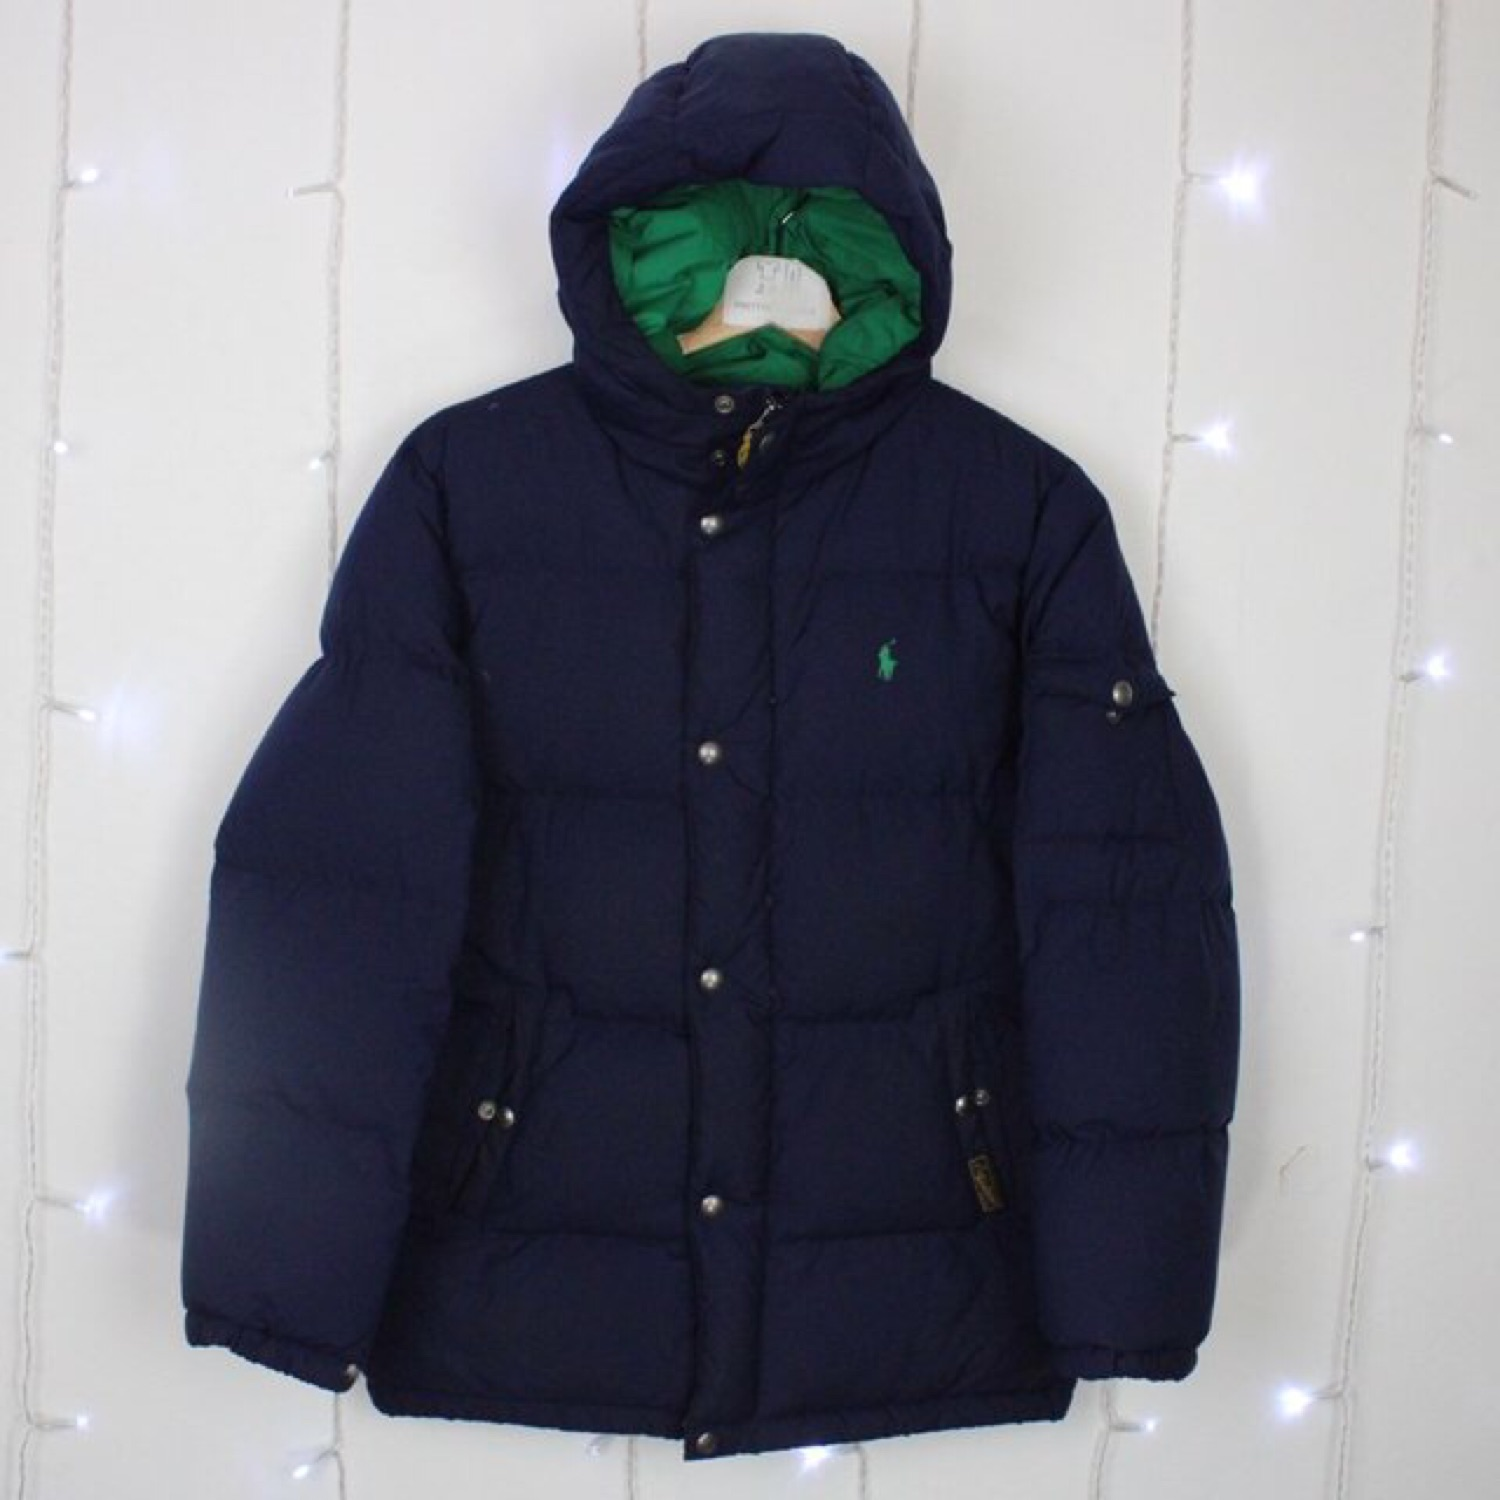 Vintage Polo Ralph Lauren Puffer Jacket Coat